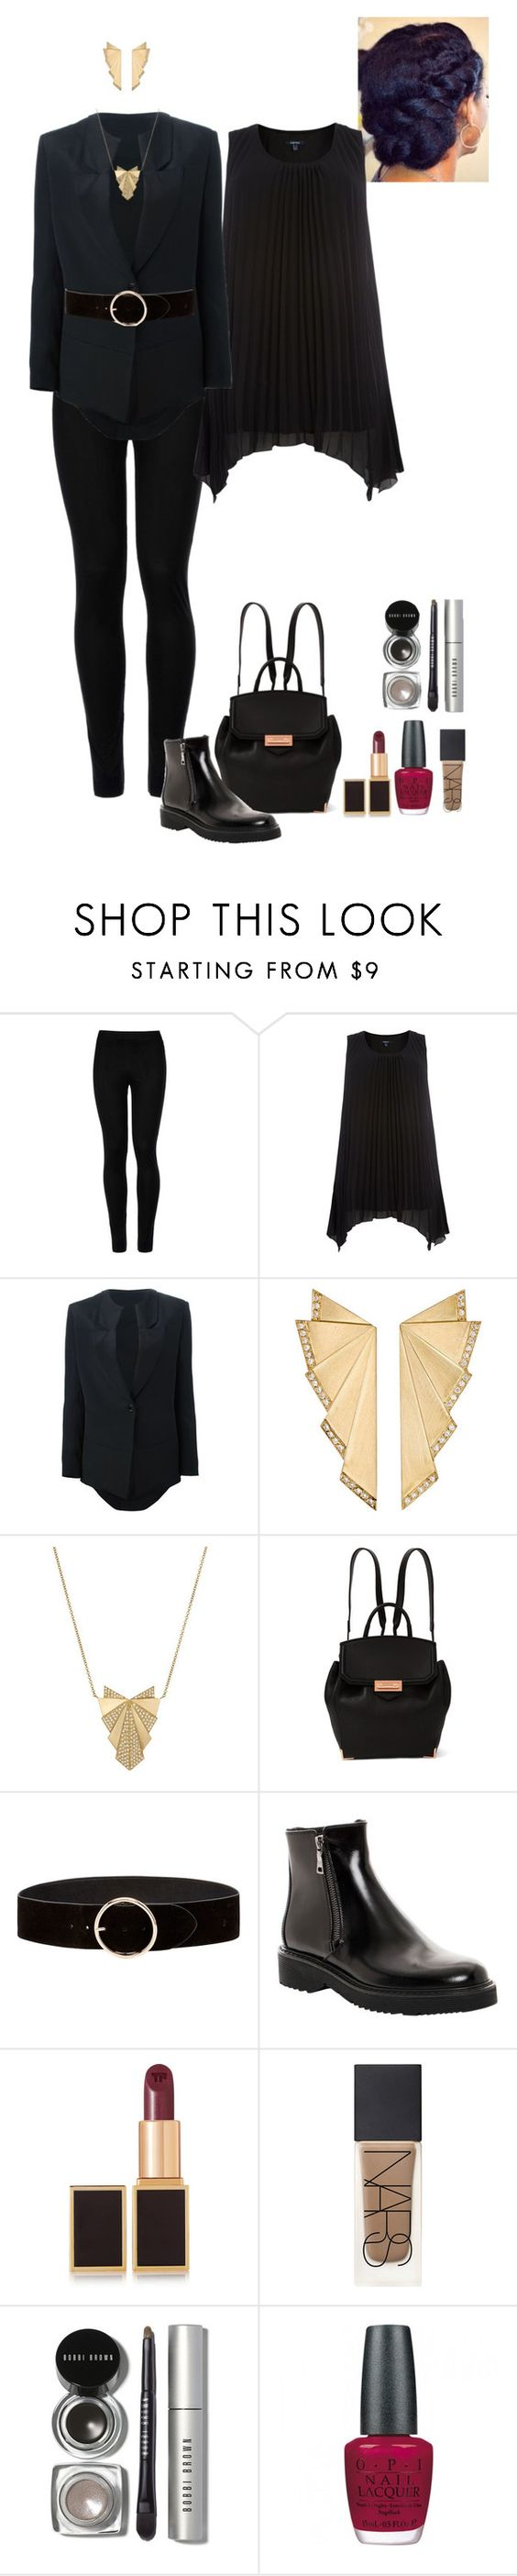 """Work clothes (Aoife)"" by shulabond on Polyvore featuring Wolford, Samya, COSTUME NATIONAL, Ileana Makri, Alexander Wang, Prada, Tom Ford, NARS Cosmetics, Bobbi Brown Cosmetics and OPI"